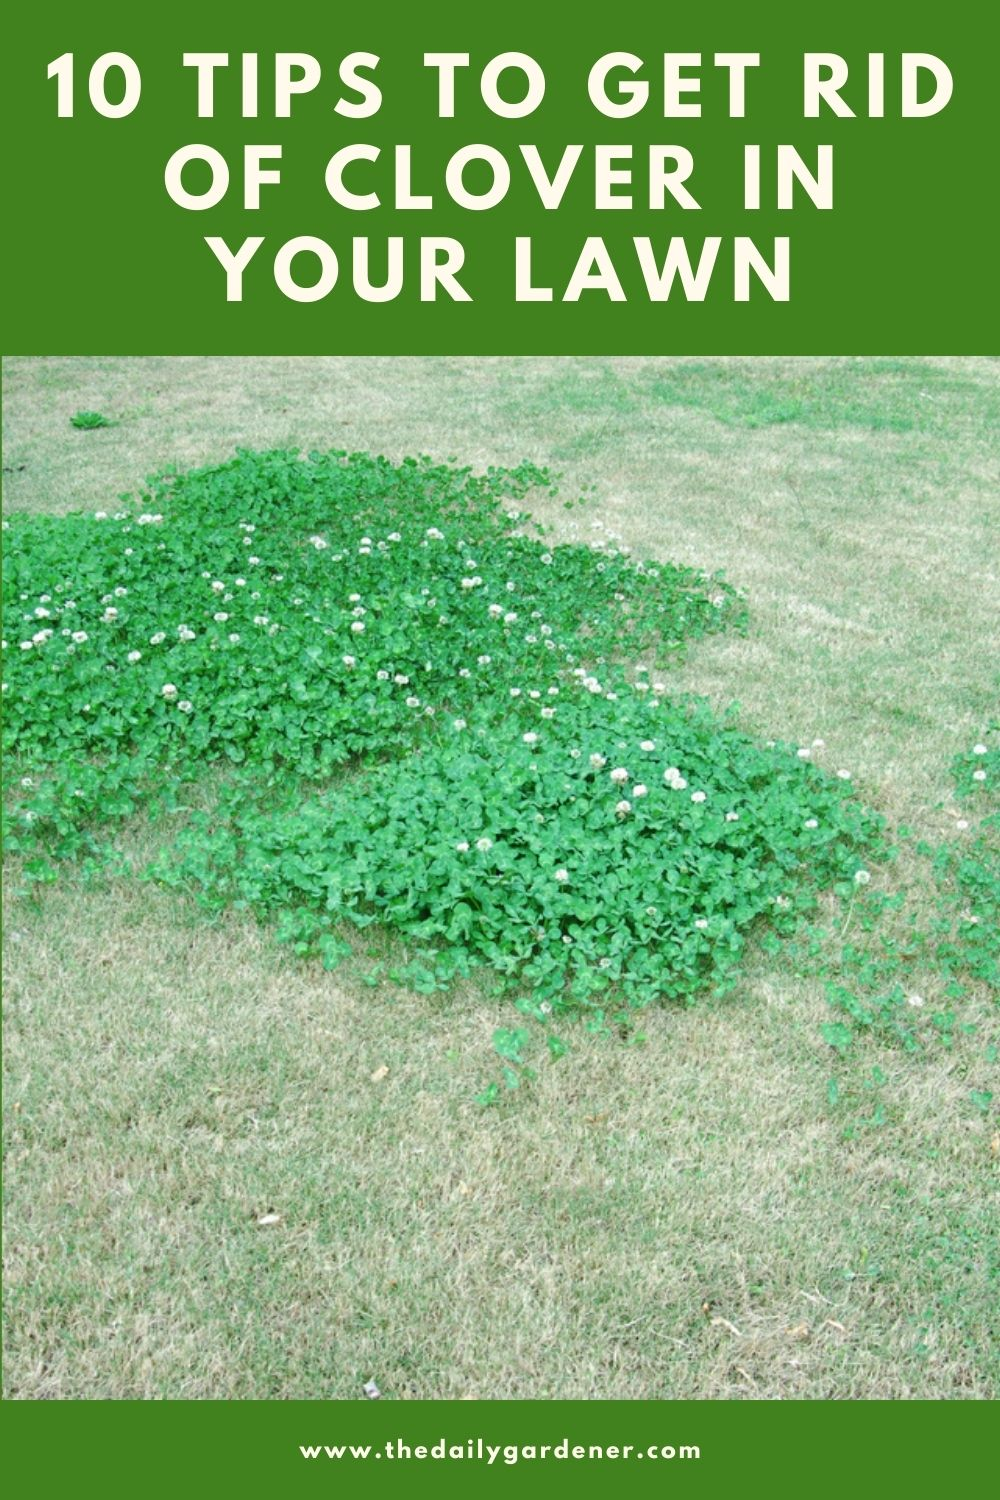 10 Tips to Get Rid of Clover in Your Lawn 2